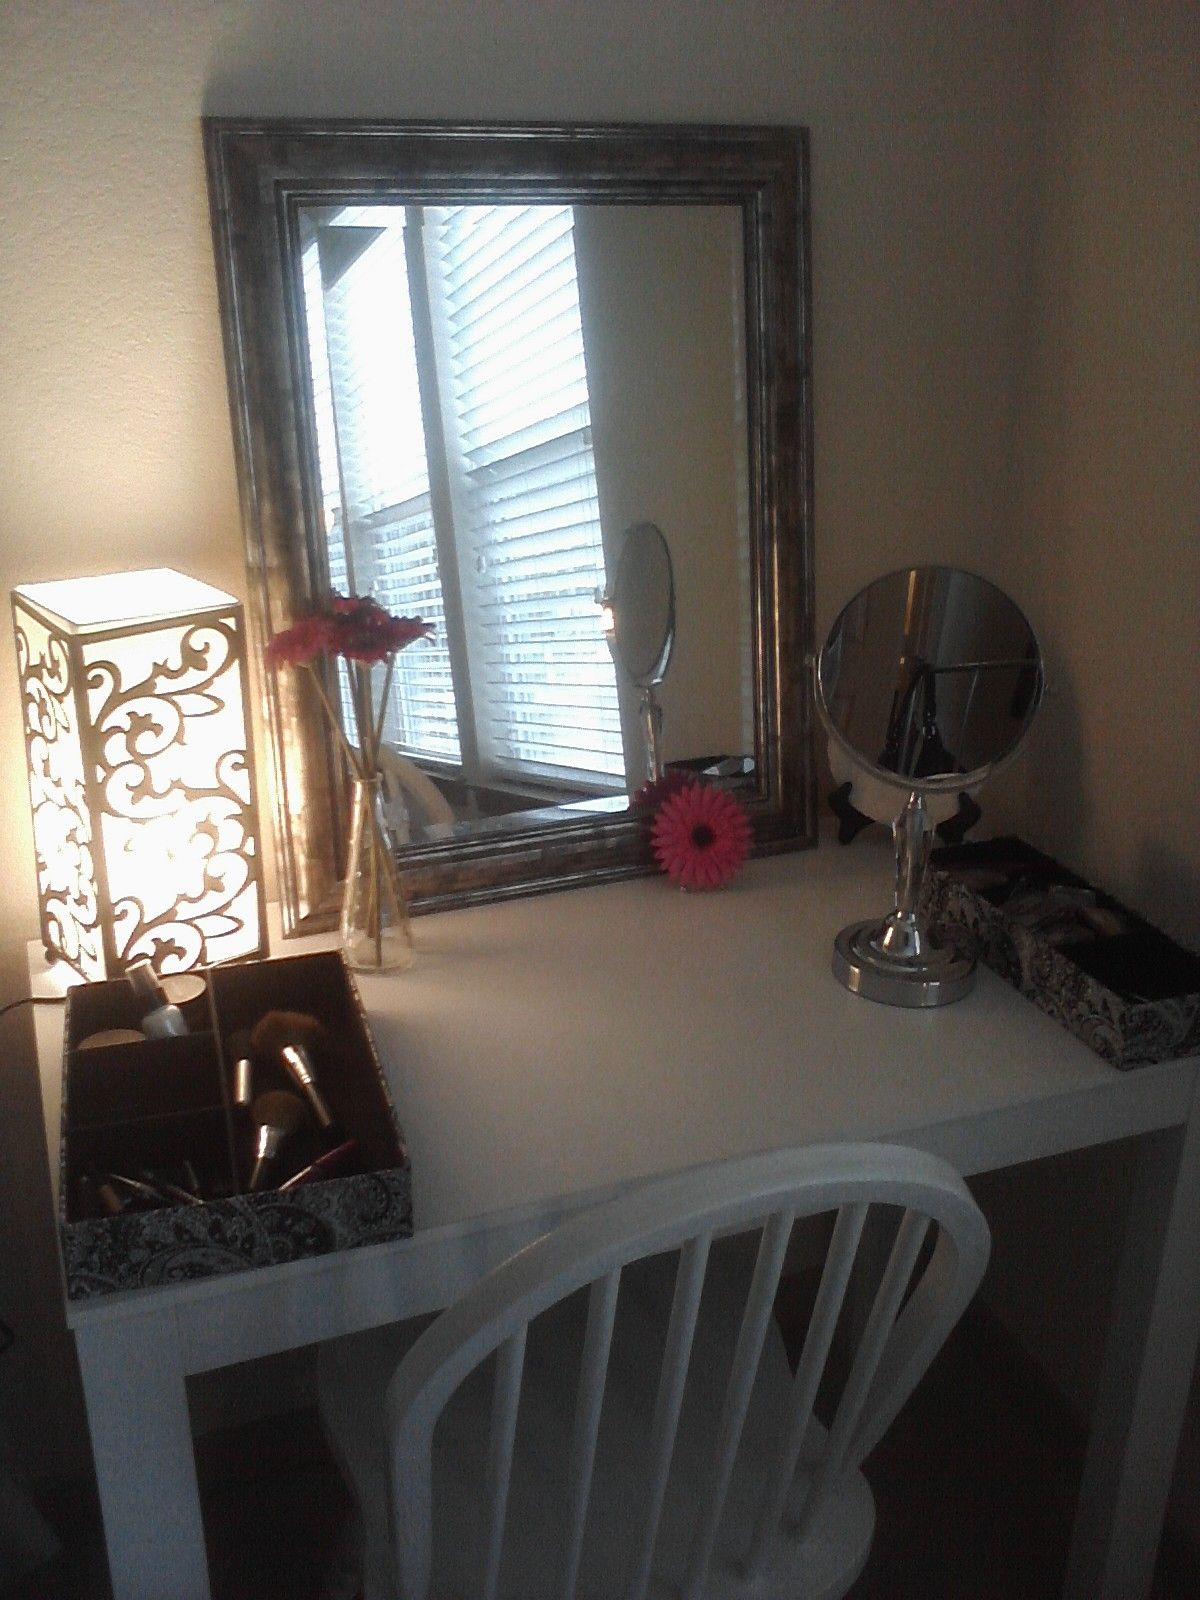 Vanity I created. Mirror19.99 TJ Maxx, White Desk 19.99